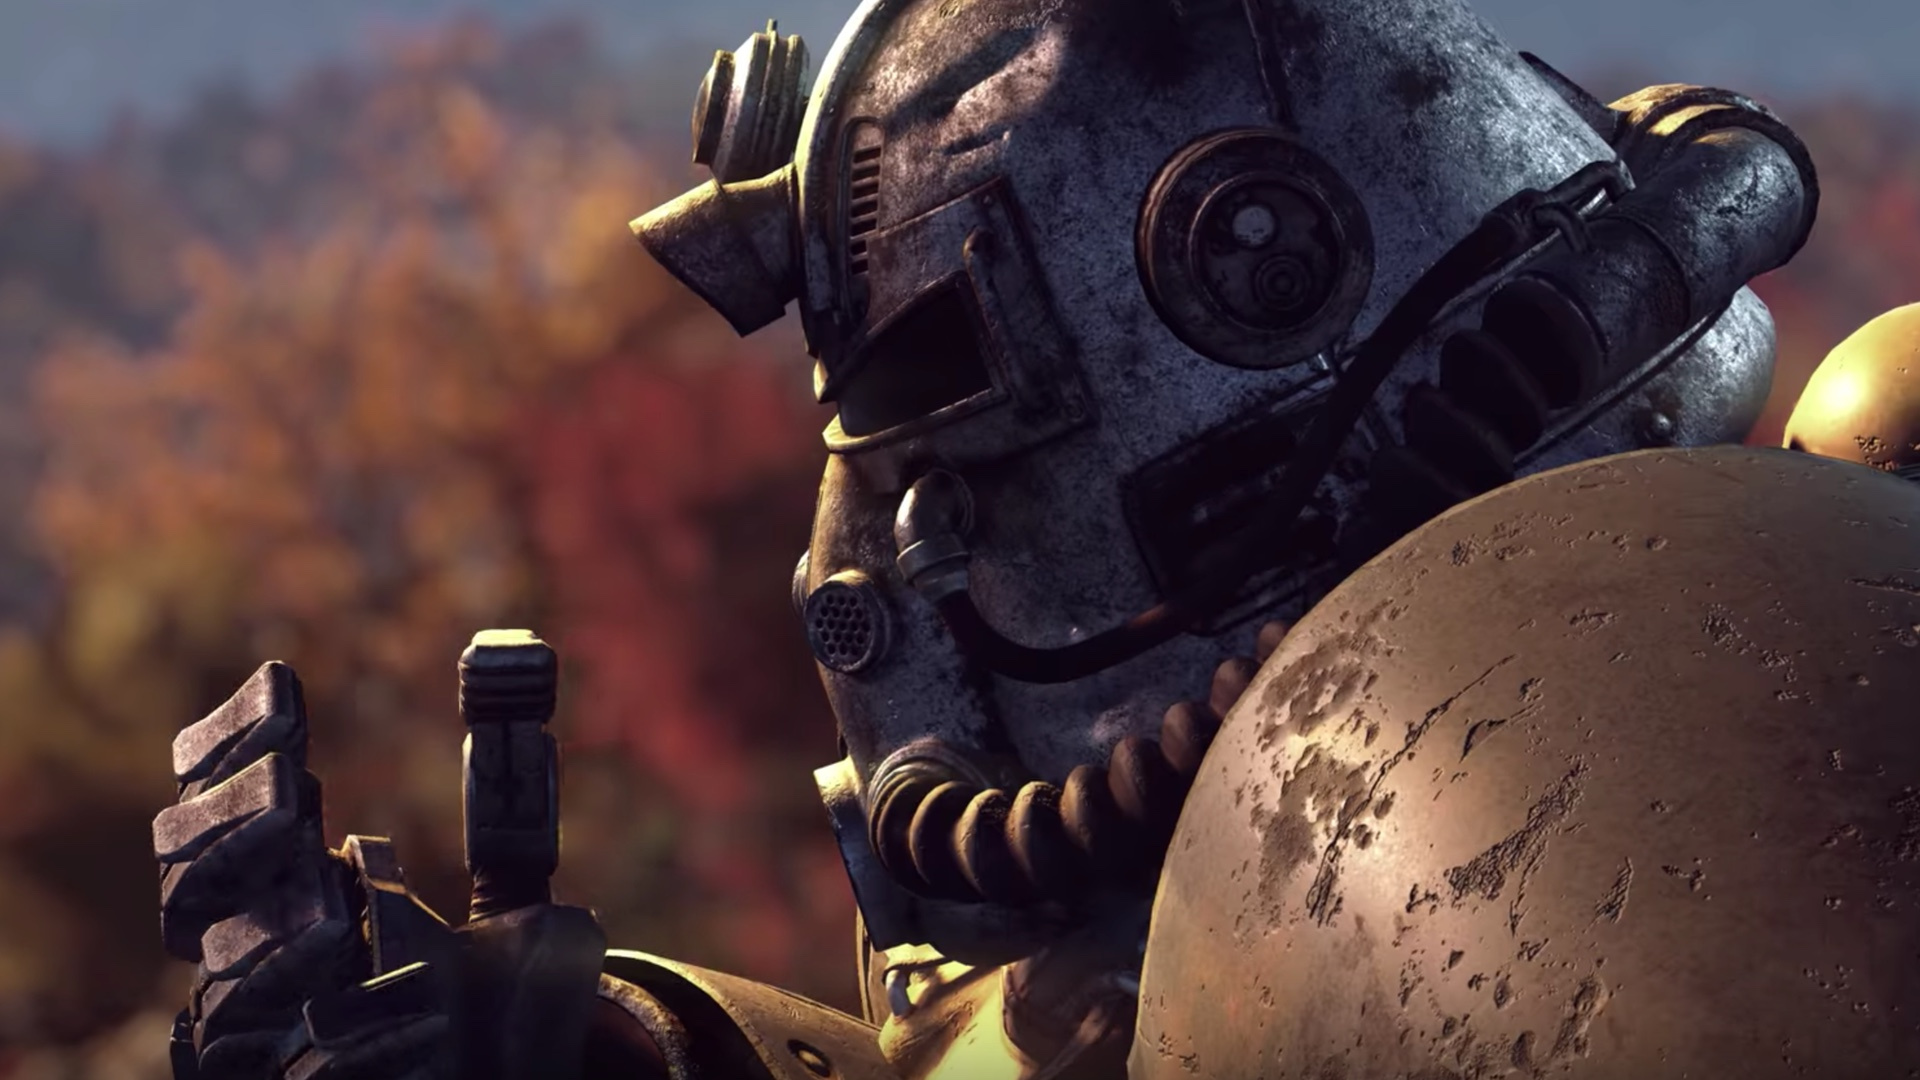 Fallout 76's Gigantic Day One Patch Is Bigger Than the 45GB